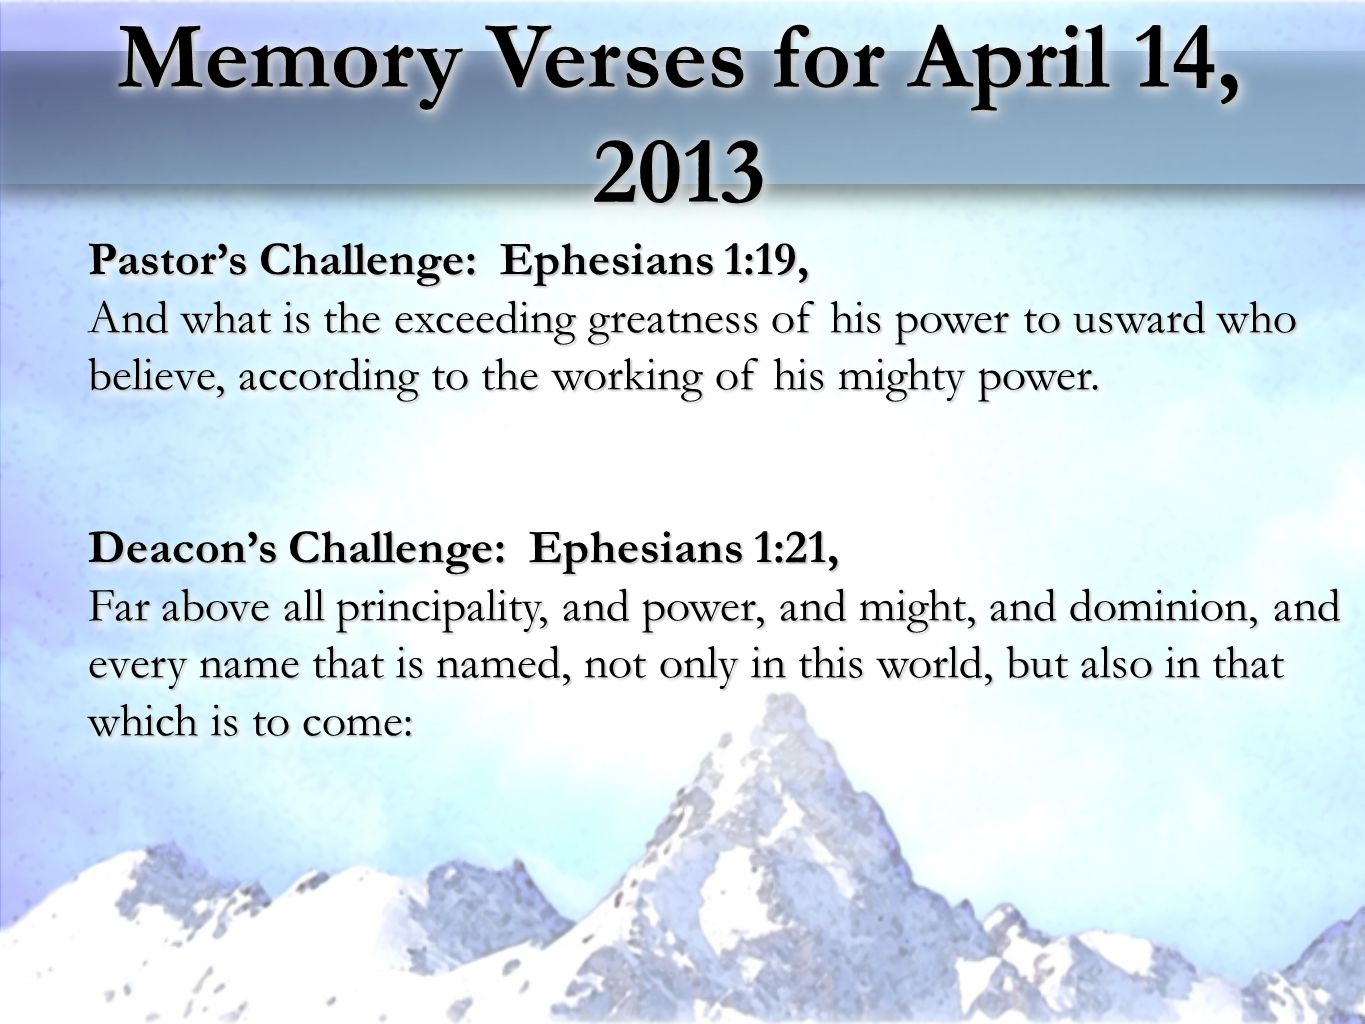 Memory Verses for April 14, 2013 Pastor's Challenge: Ephesians 1:19, And what is the exceeding greatness of his power to usward who believe, according to the working of his mighty power.